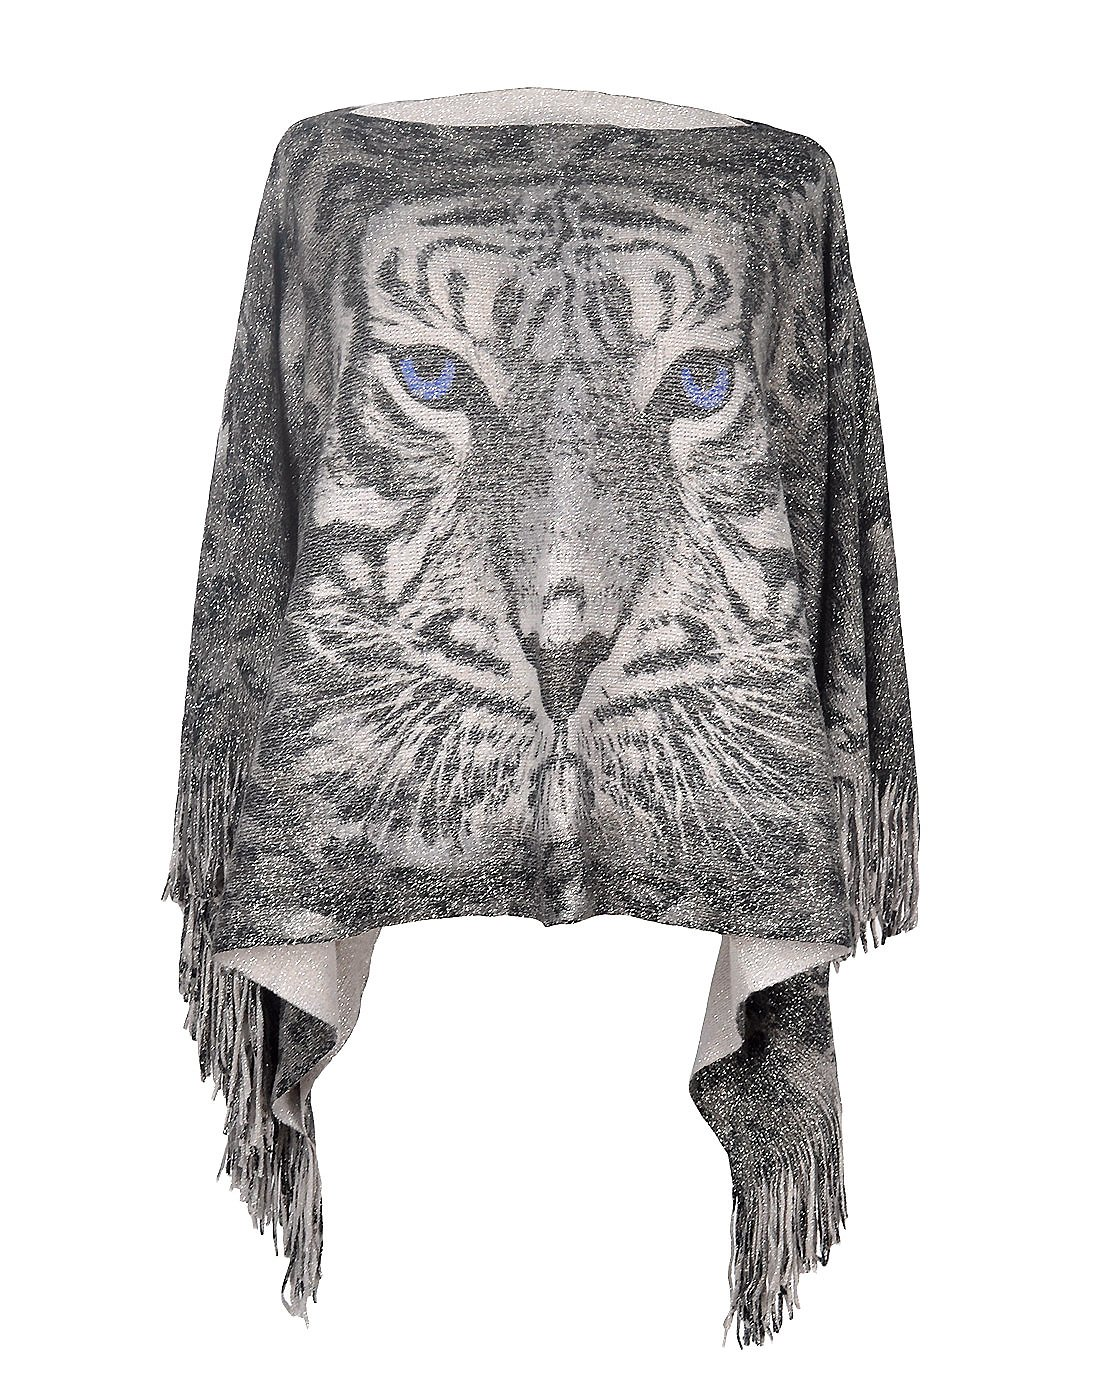 Lady's Tiger Pattern Tassels Sleeve Shawl Poncho Cape Batwing Tops for Women (Grey)